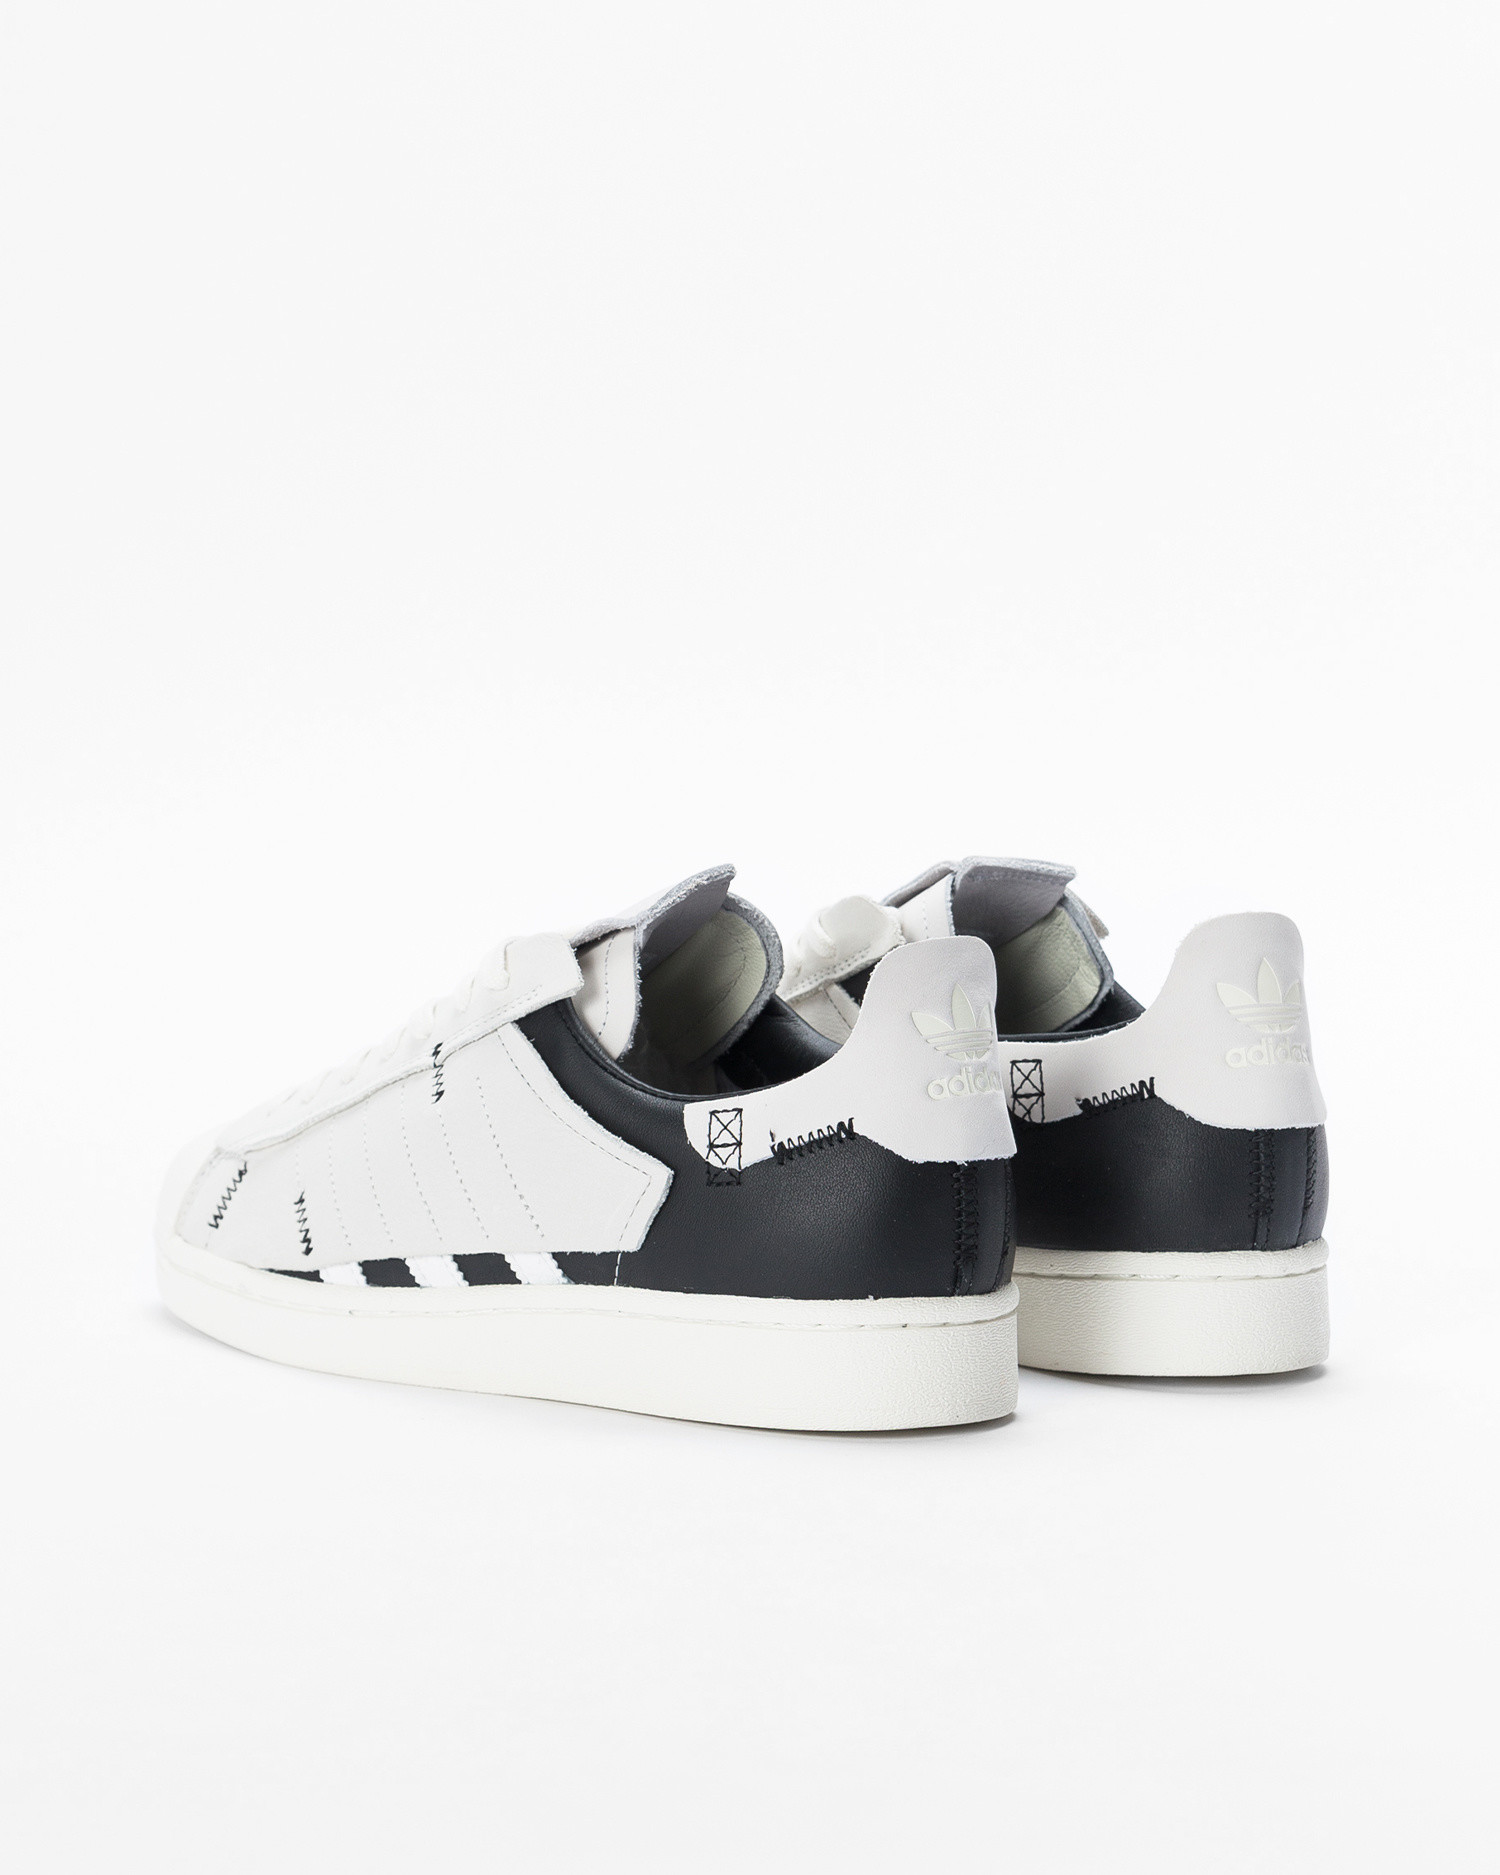 Adidas Superstar WS1 Cloud White/Core Black/Off White